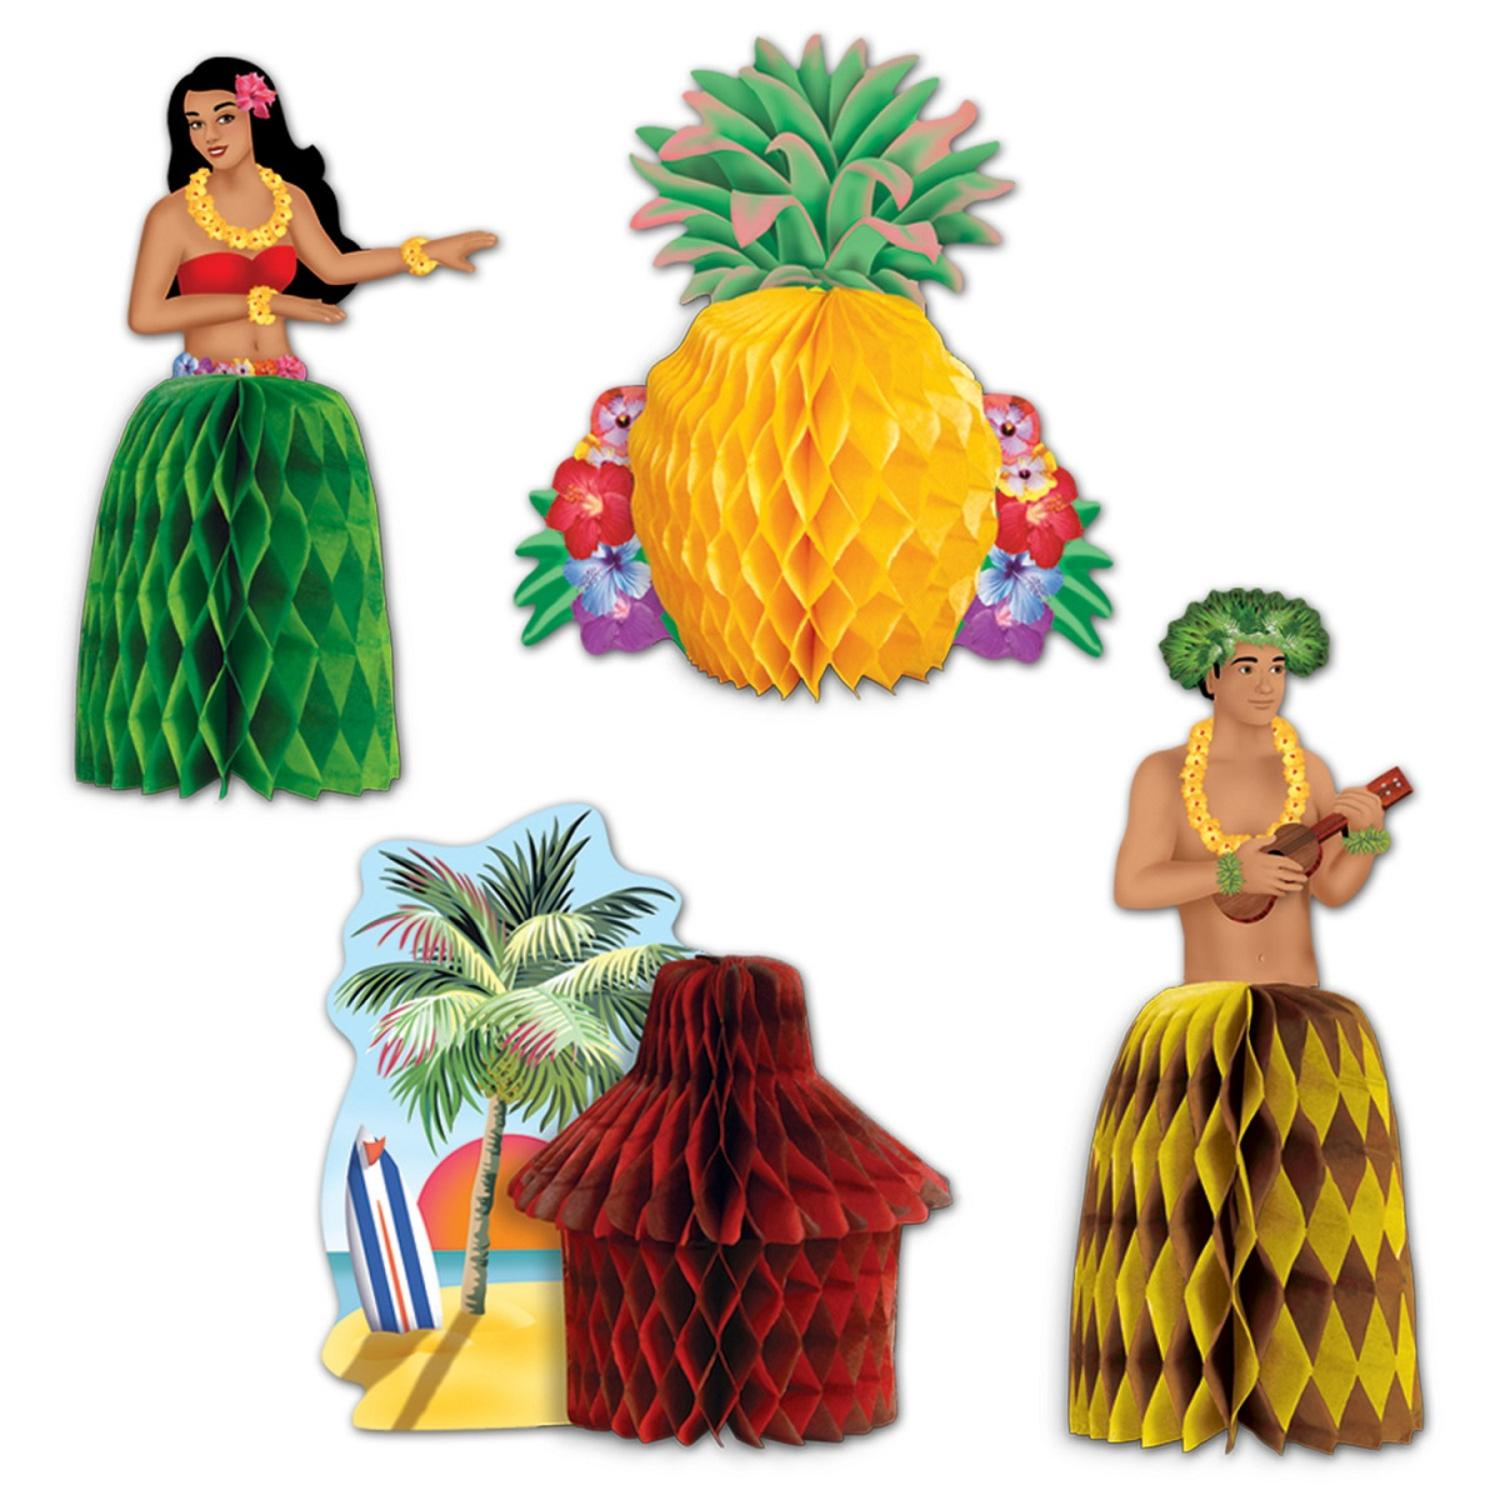 Club Pack of 48 Colorful Hawaiian Luau Mini Honeycomb Playmate Centerpiece Party Decorations 5.5""